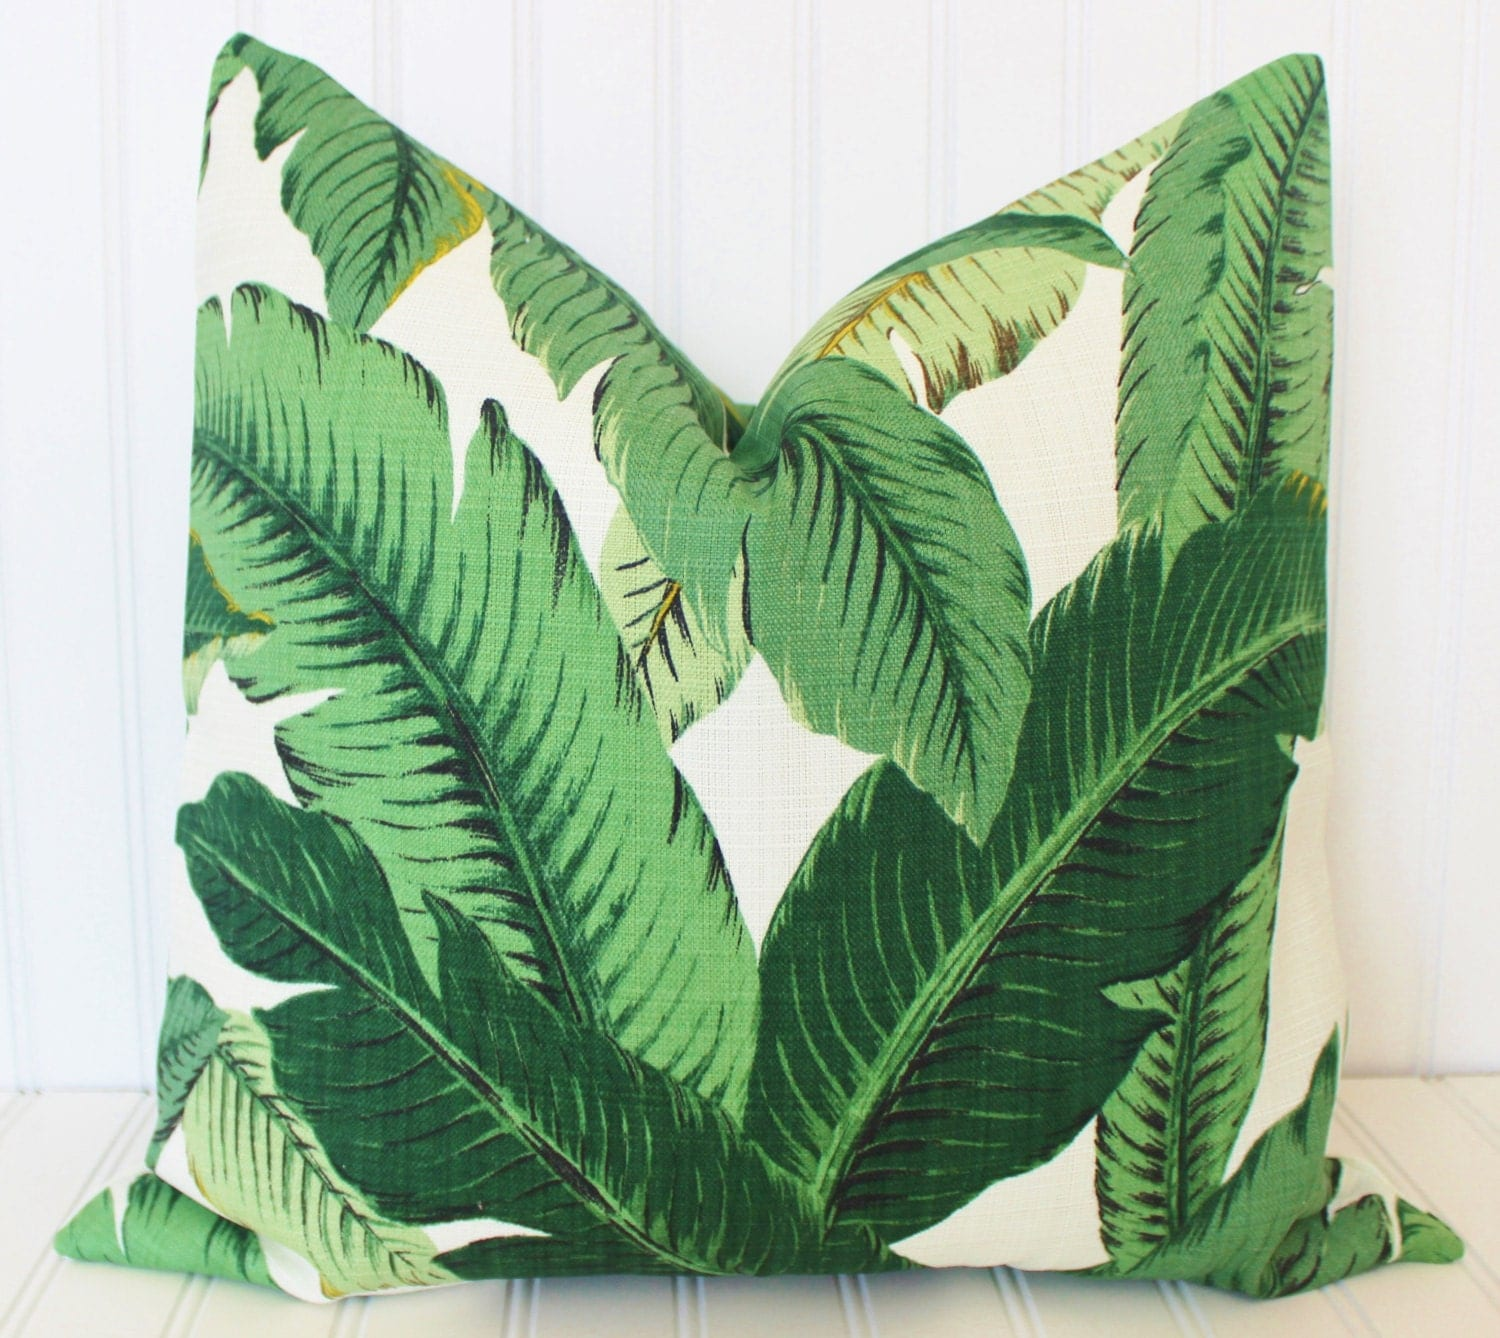 Decorative Pillow Palm Tree : Banana Leaf Pillow Palm Pillow Throw Pillow Cover